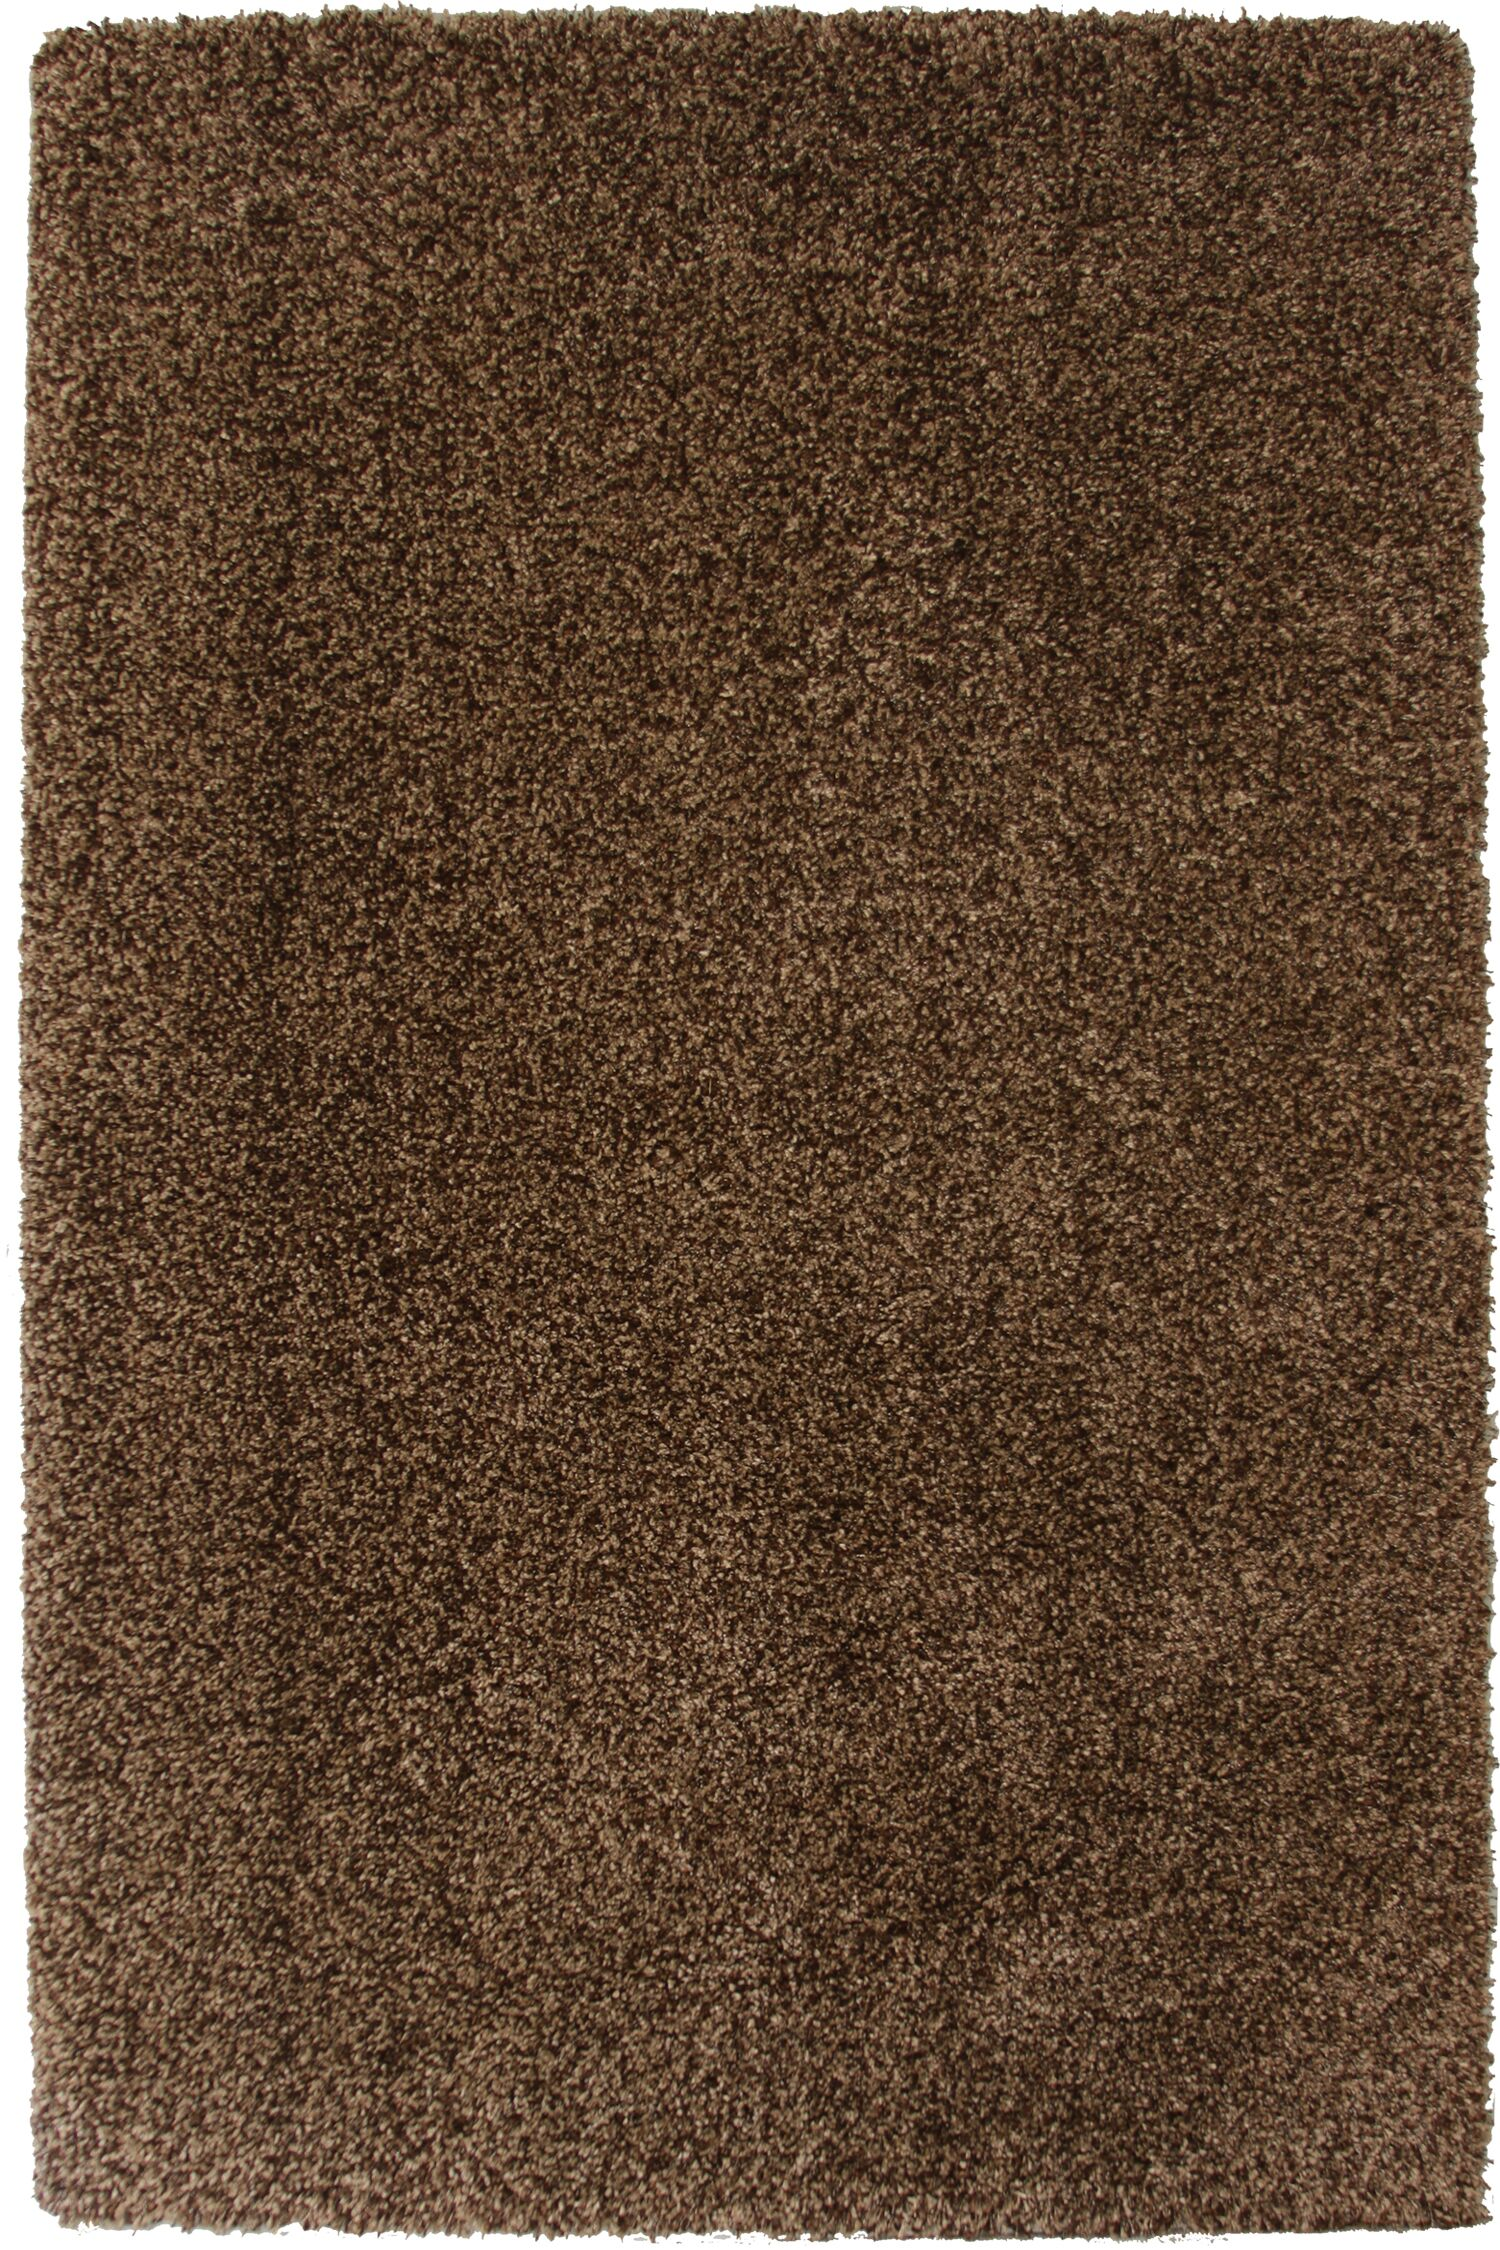 Peloquin Brown Area Rug Rug Size: 9'3